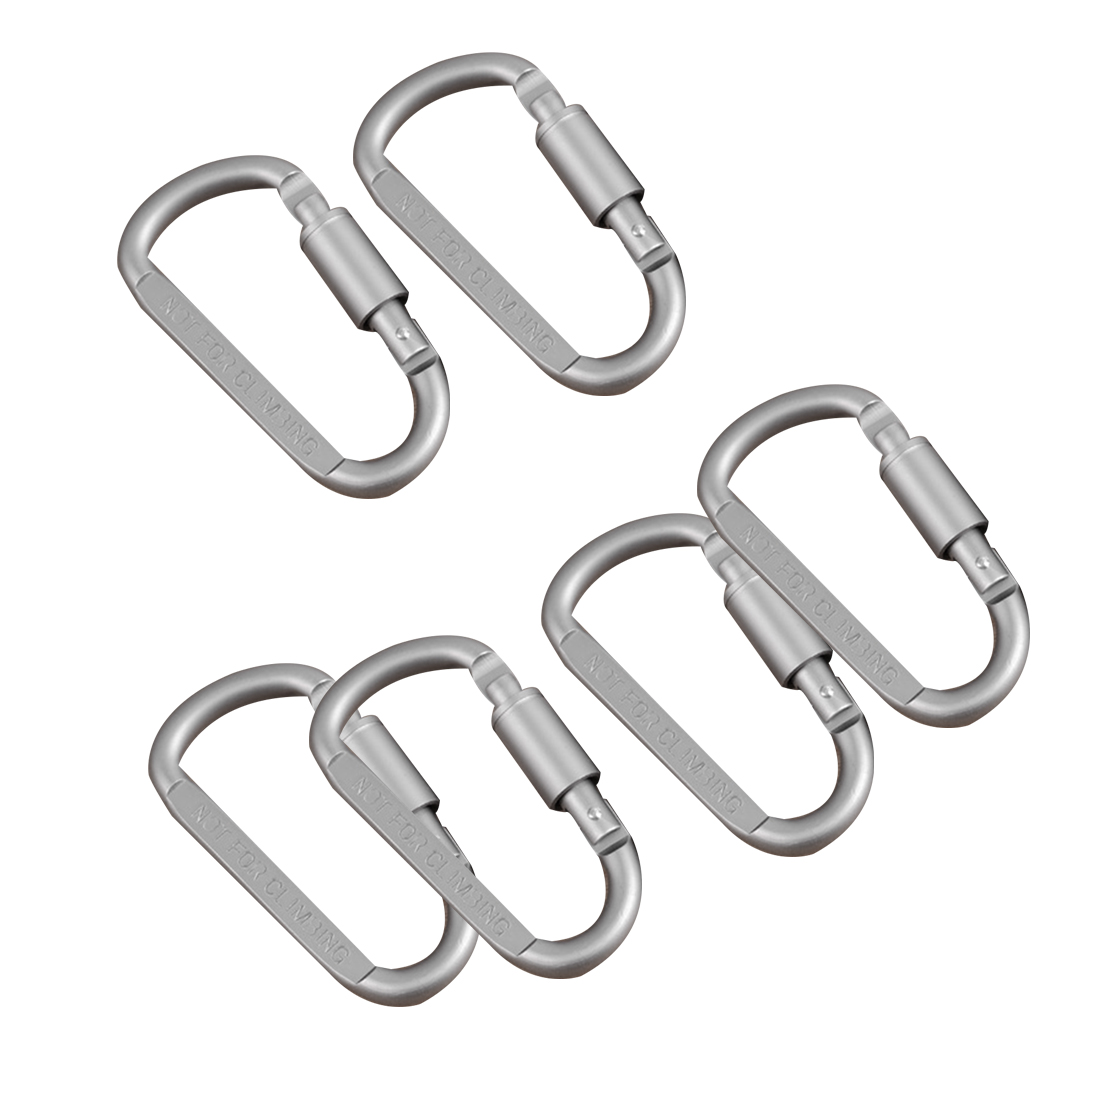 6pcs/lot Travel Kit Camping Climbing Equipment Alloy Aluminum Survival Gear Camp Mountaineering Hook EDC Carabiner